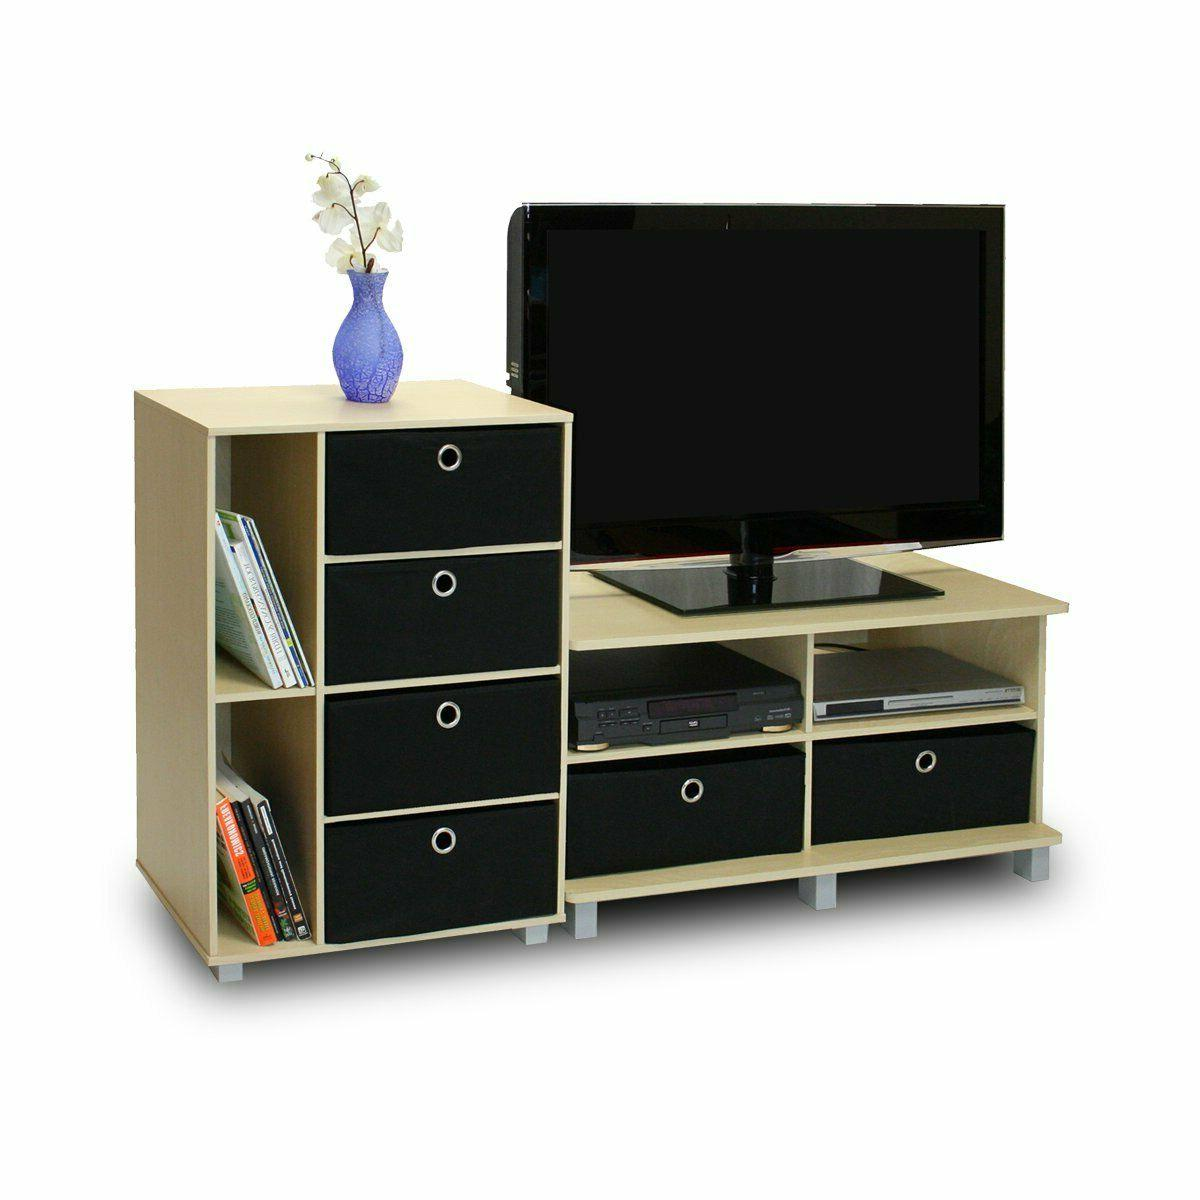 Furinno 11156GYW/BK Entertainment Center French